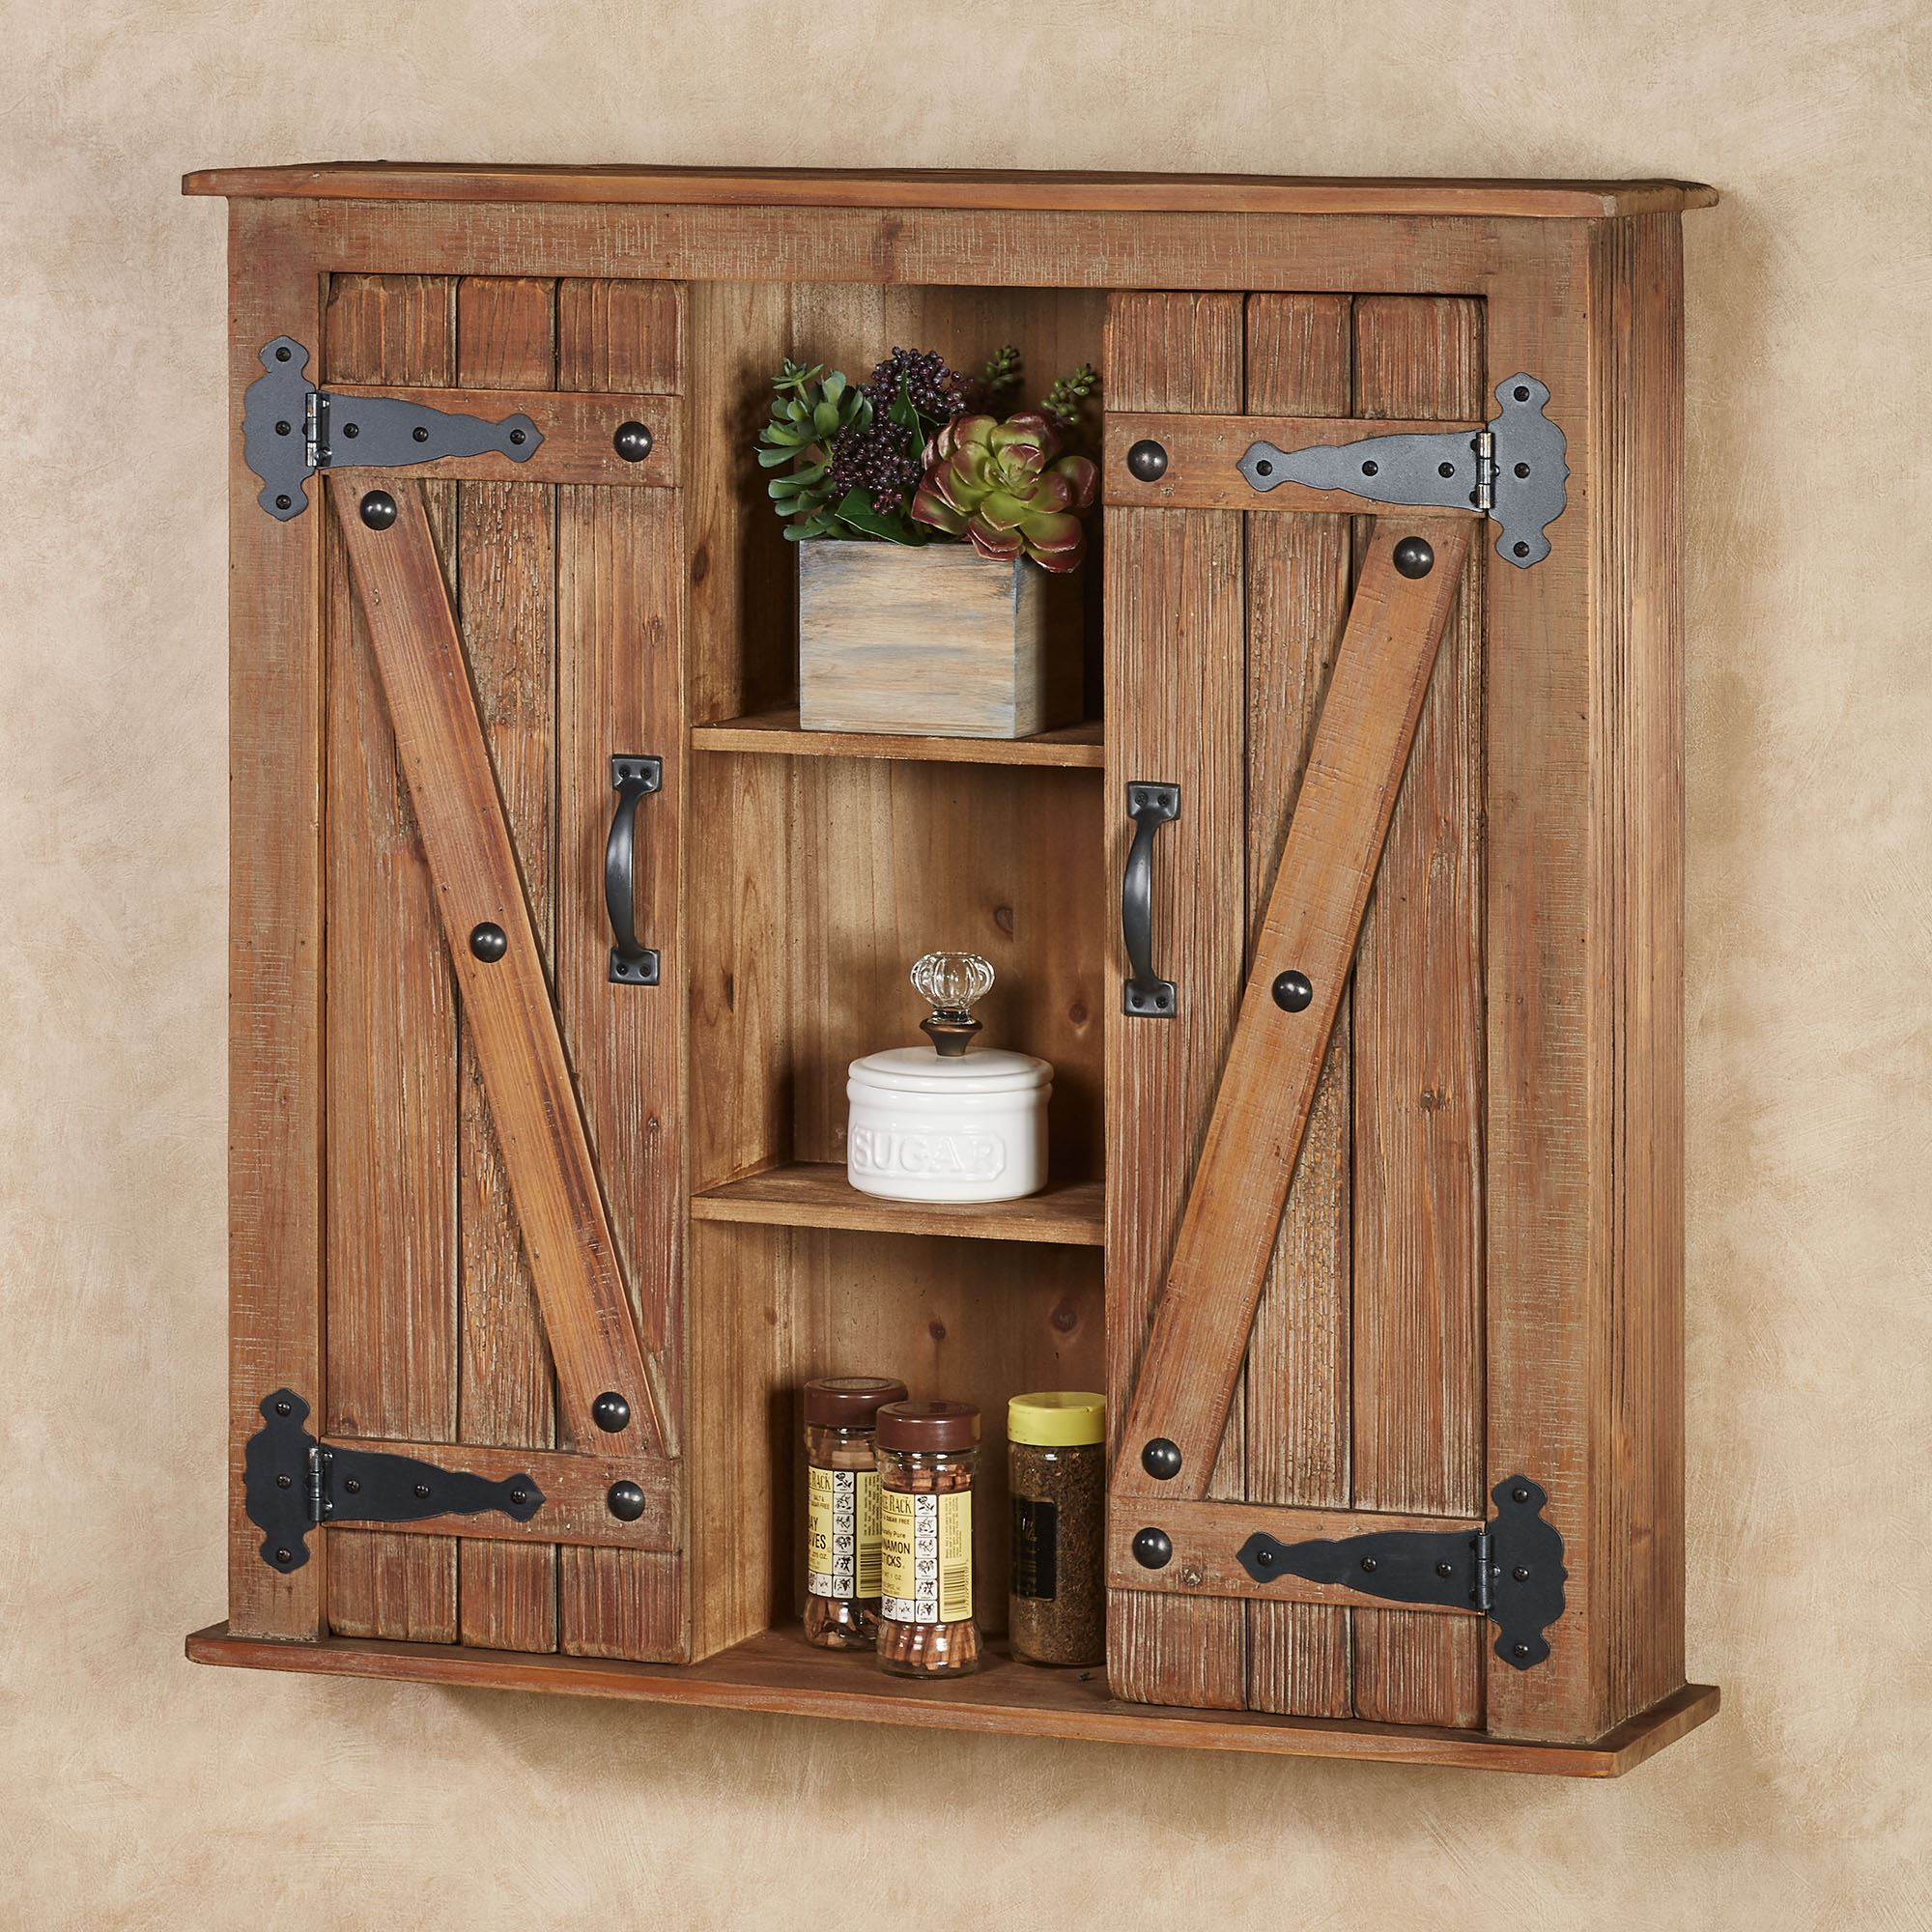 Andover Plank Style Rustic Wooden Wall